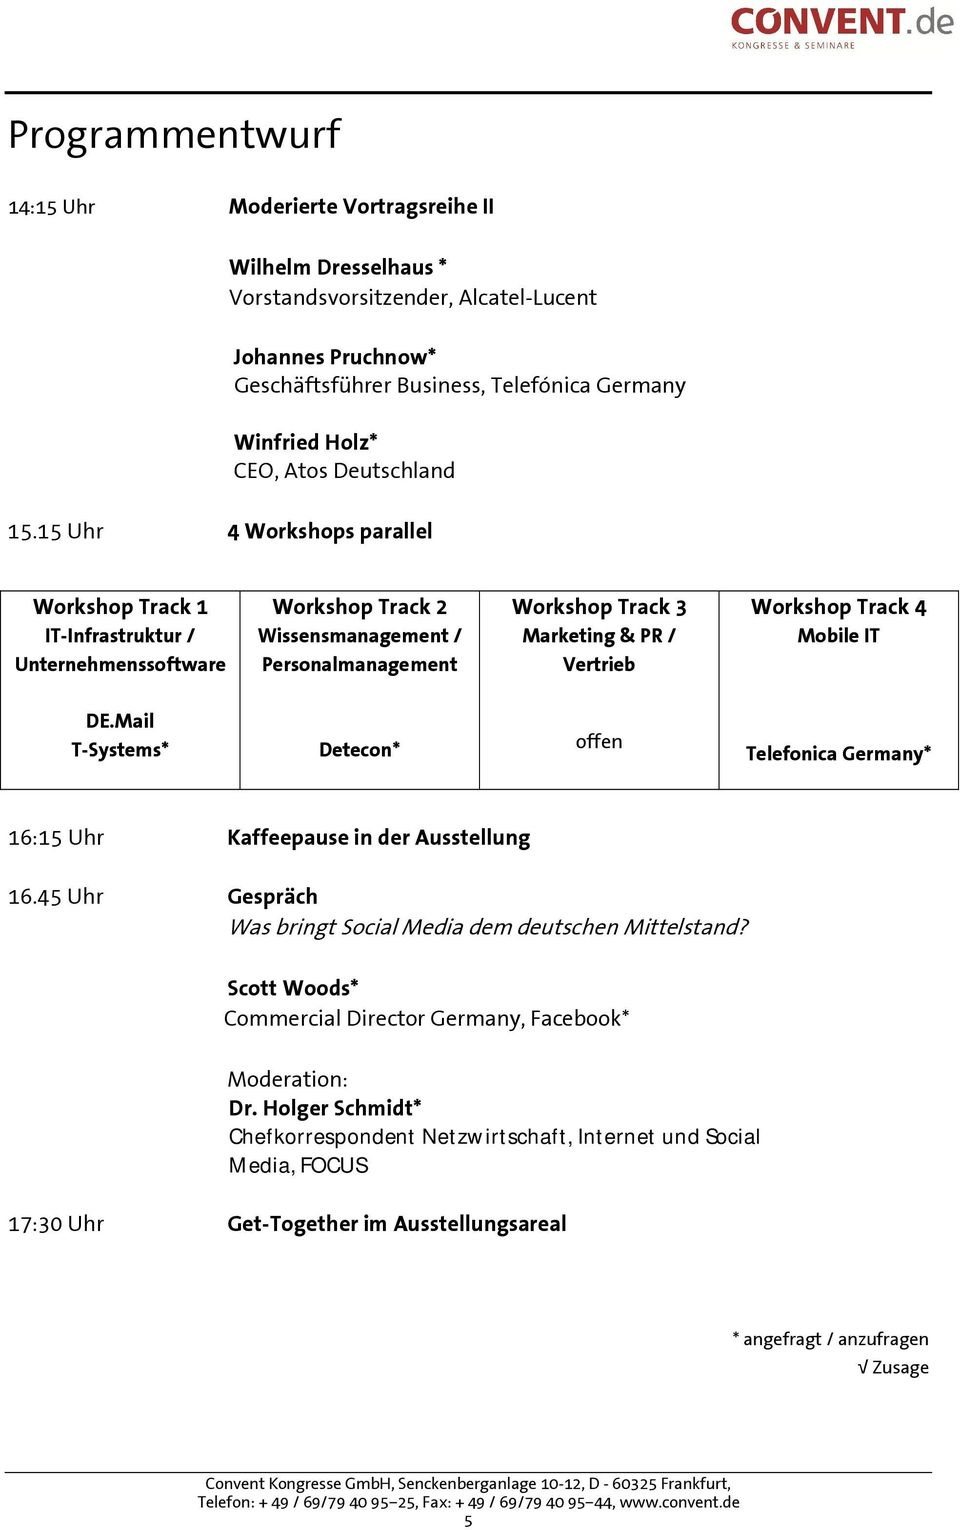 15 Uhr 4 Workshops parallel Workshop Track 1 IT-Infrastruktur / Unternehmenssoftware Workshop Track 2 Wissensmanagement / Personalmanagement Workshop Track 3 Marketing & PR / Vertrieb Workshop Track